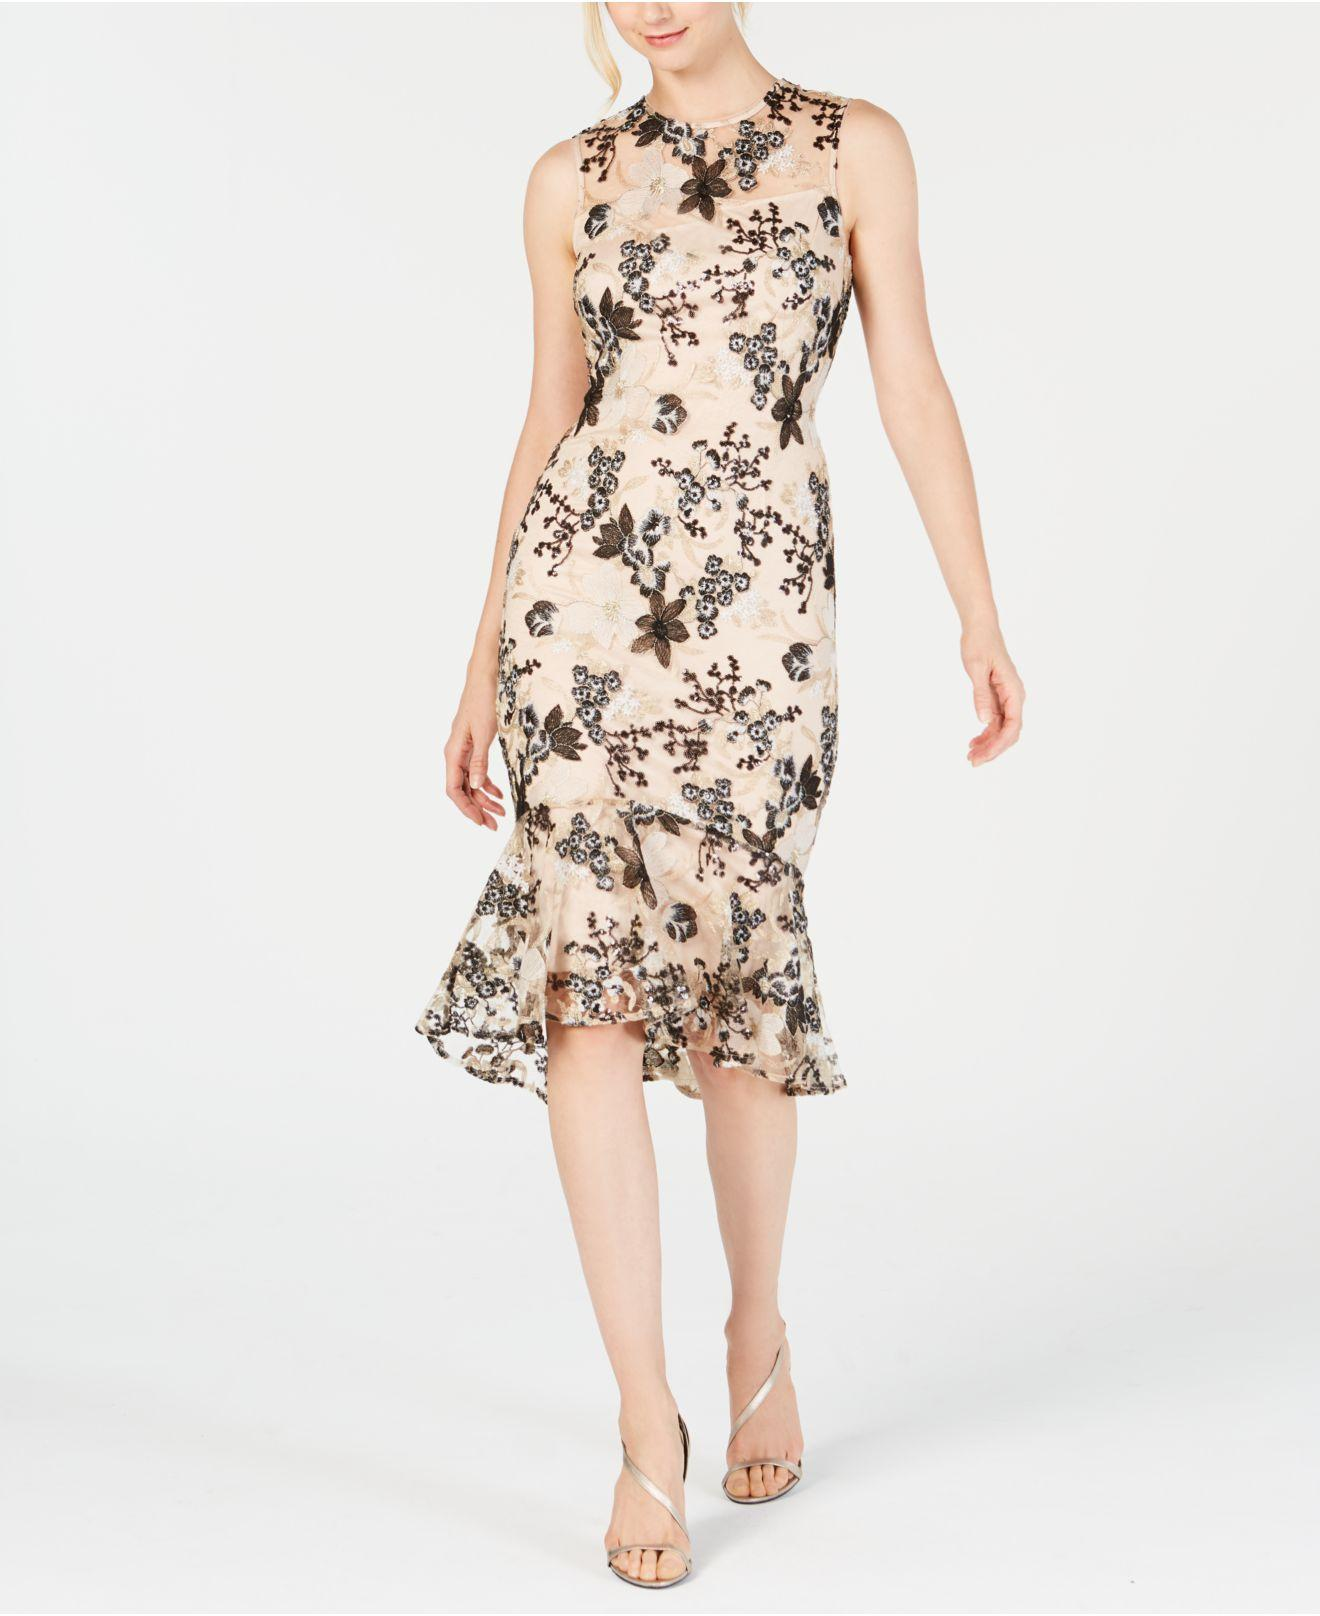 55ac5466 Calvin Klein Floral Embroidered Trumpet Midi Dress in Natural - Lyst